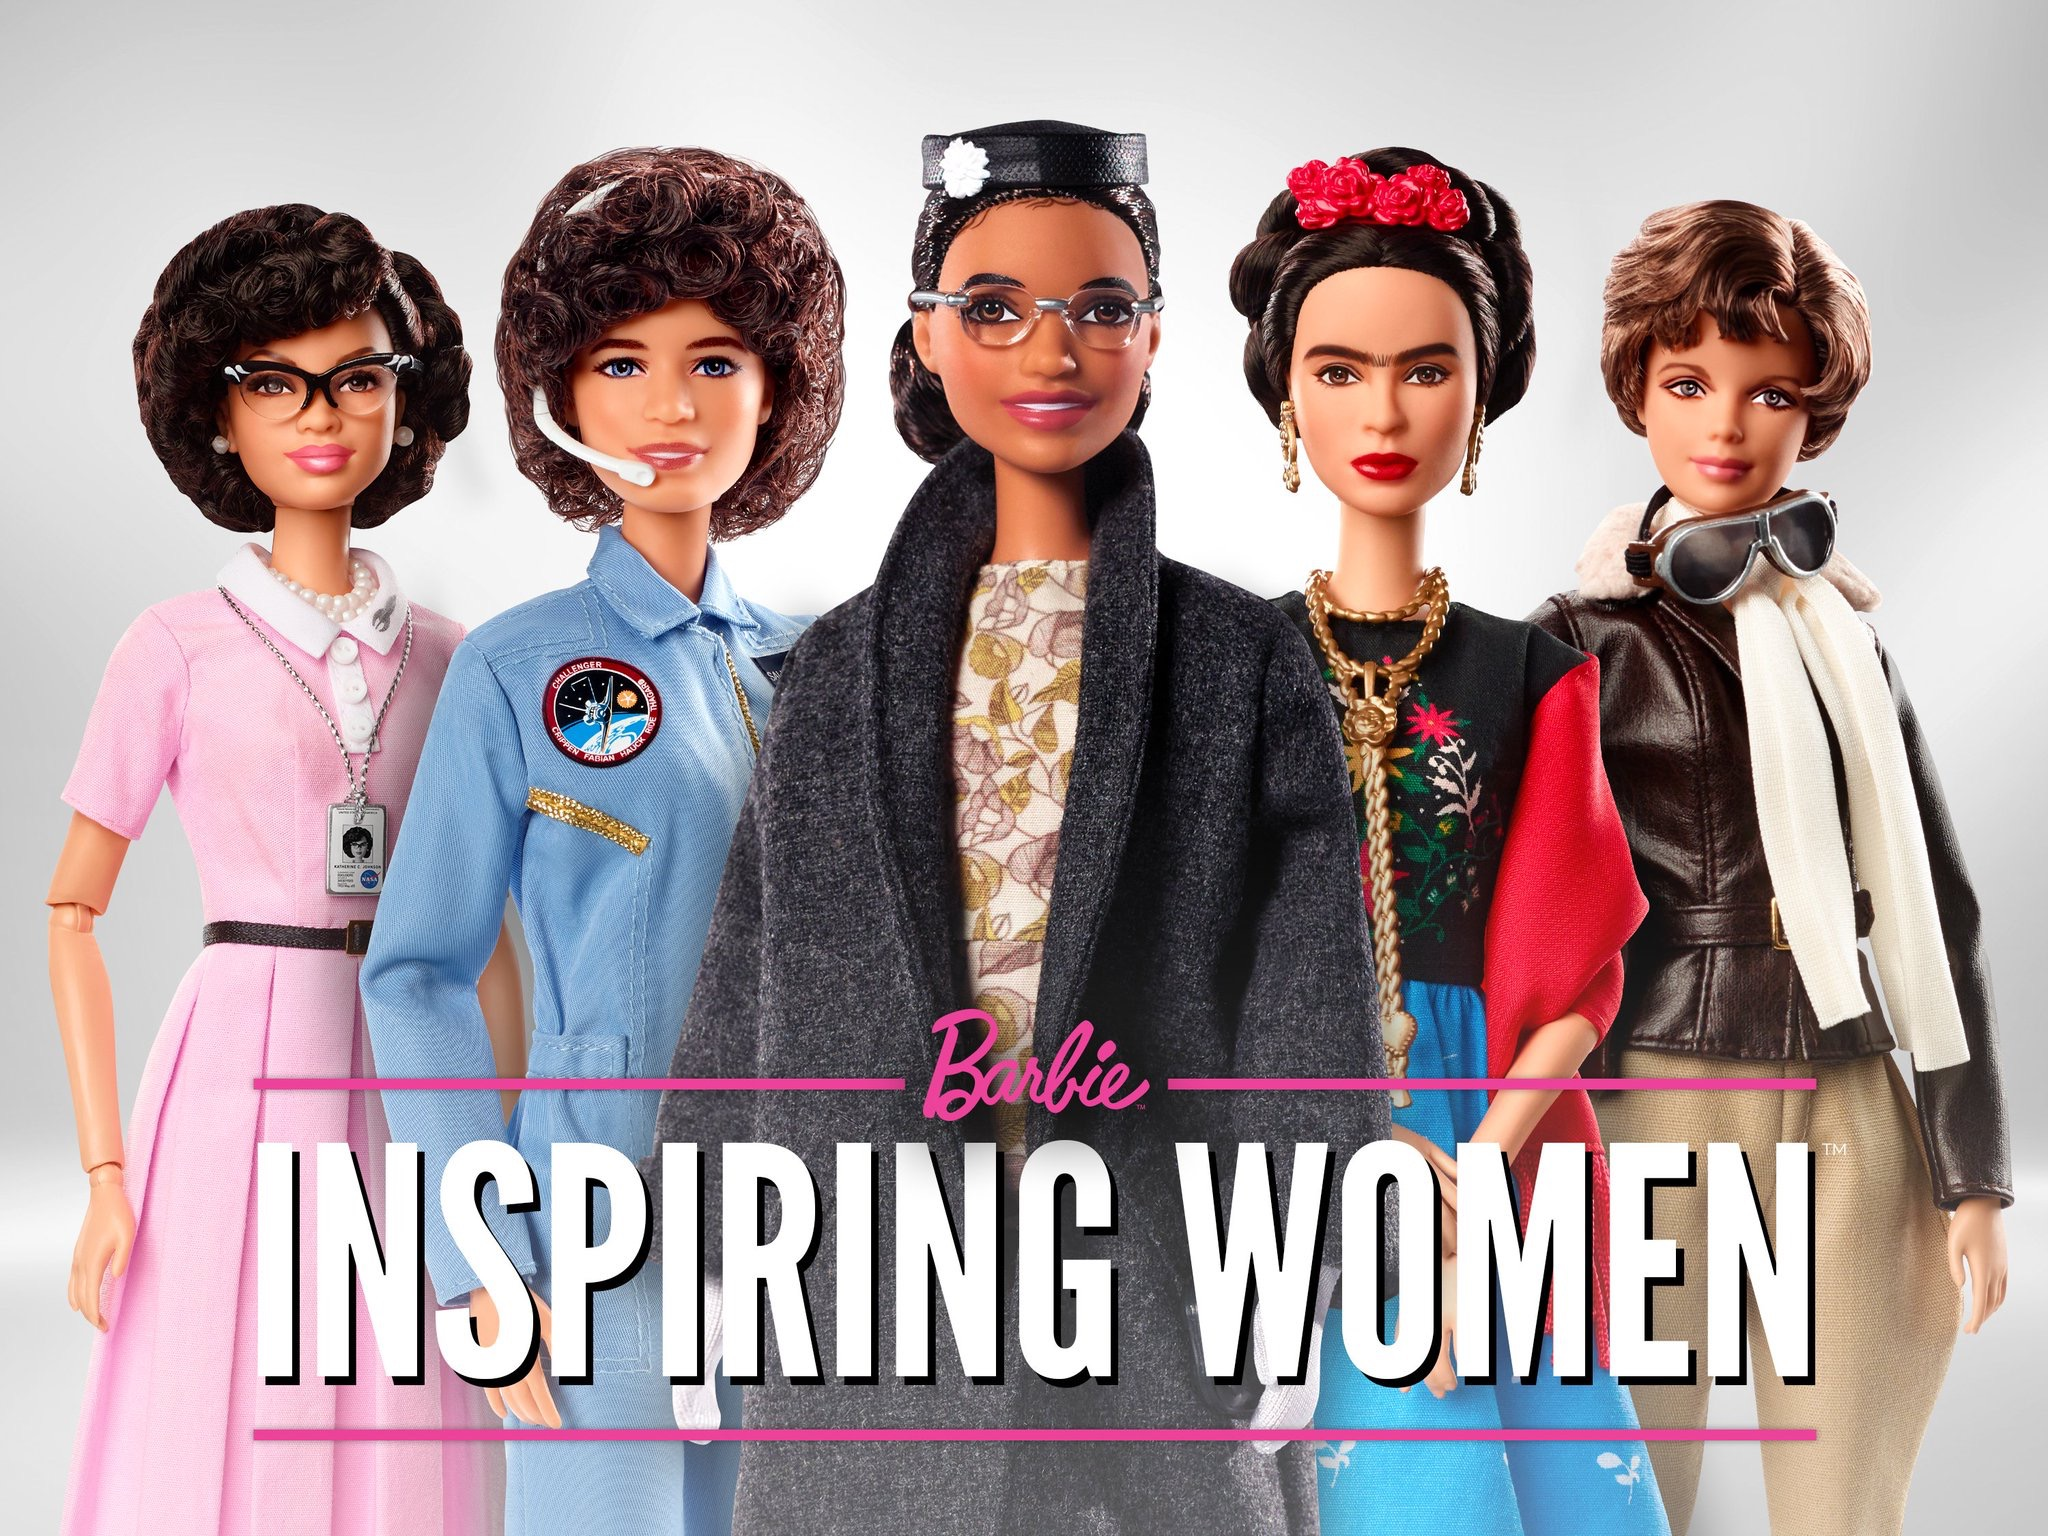 Rosa Parks Honoured With a Barbie Doll on Women Equality Day